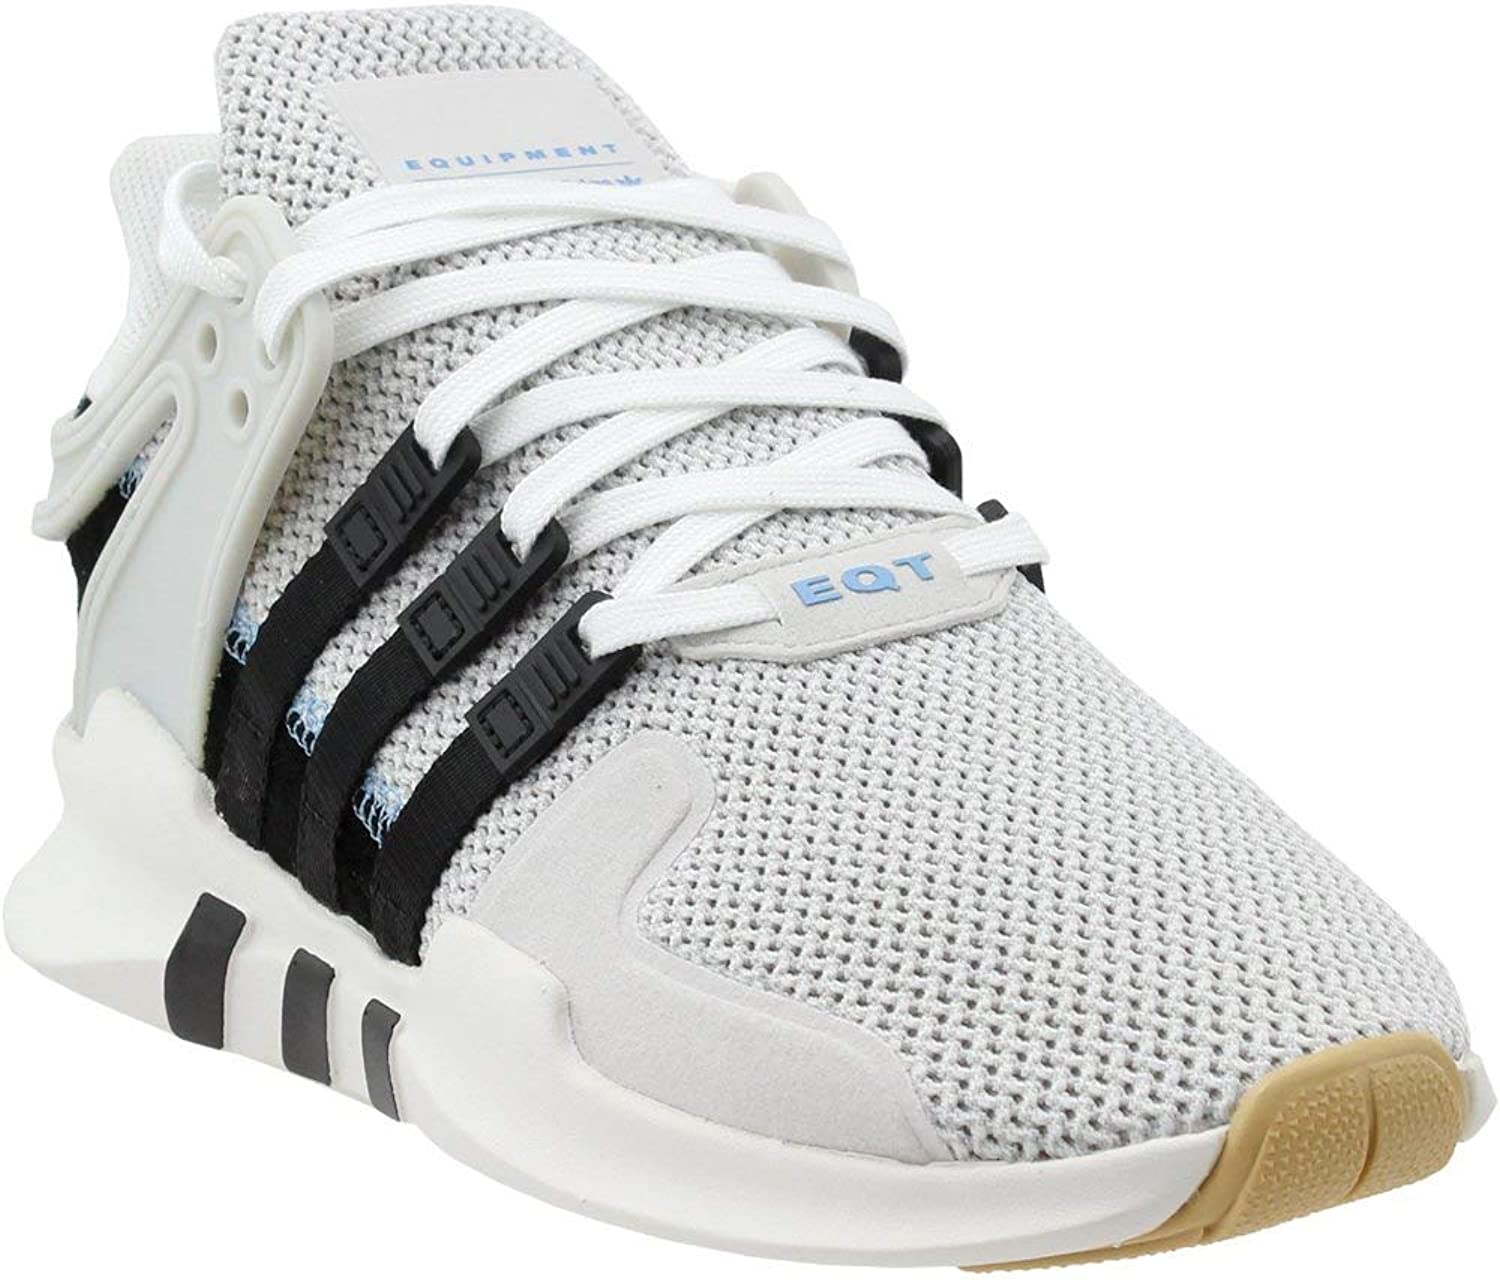 Adidas Womens EQT Support ADV Athletic & Sneakers Grey